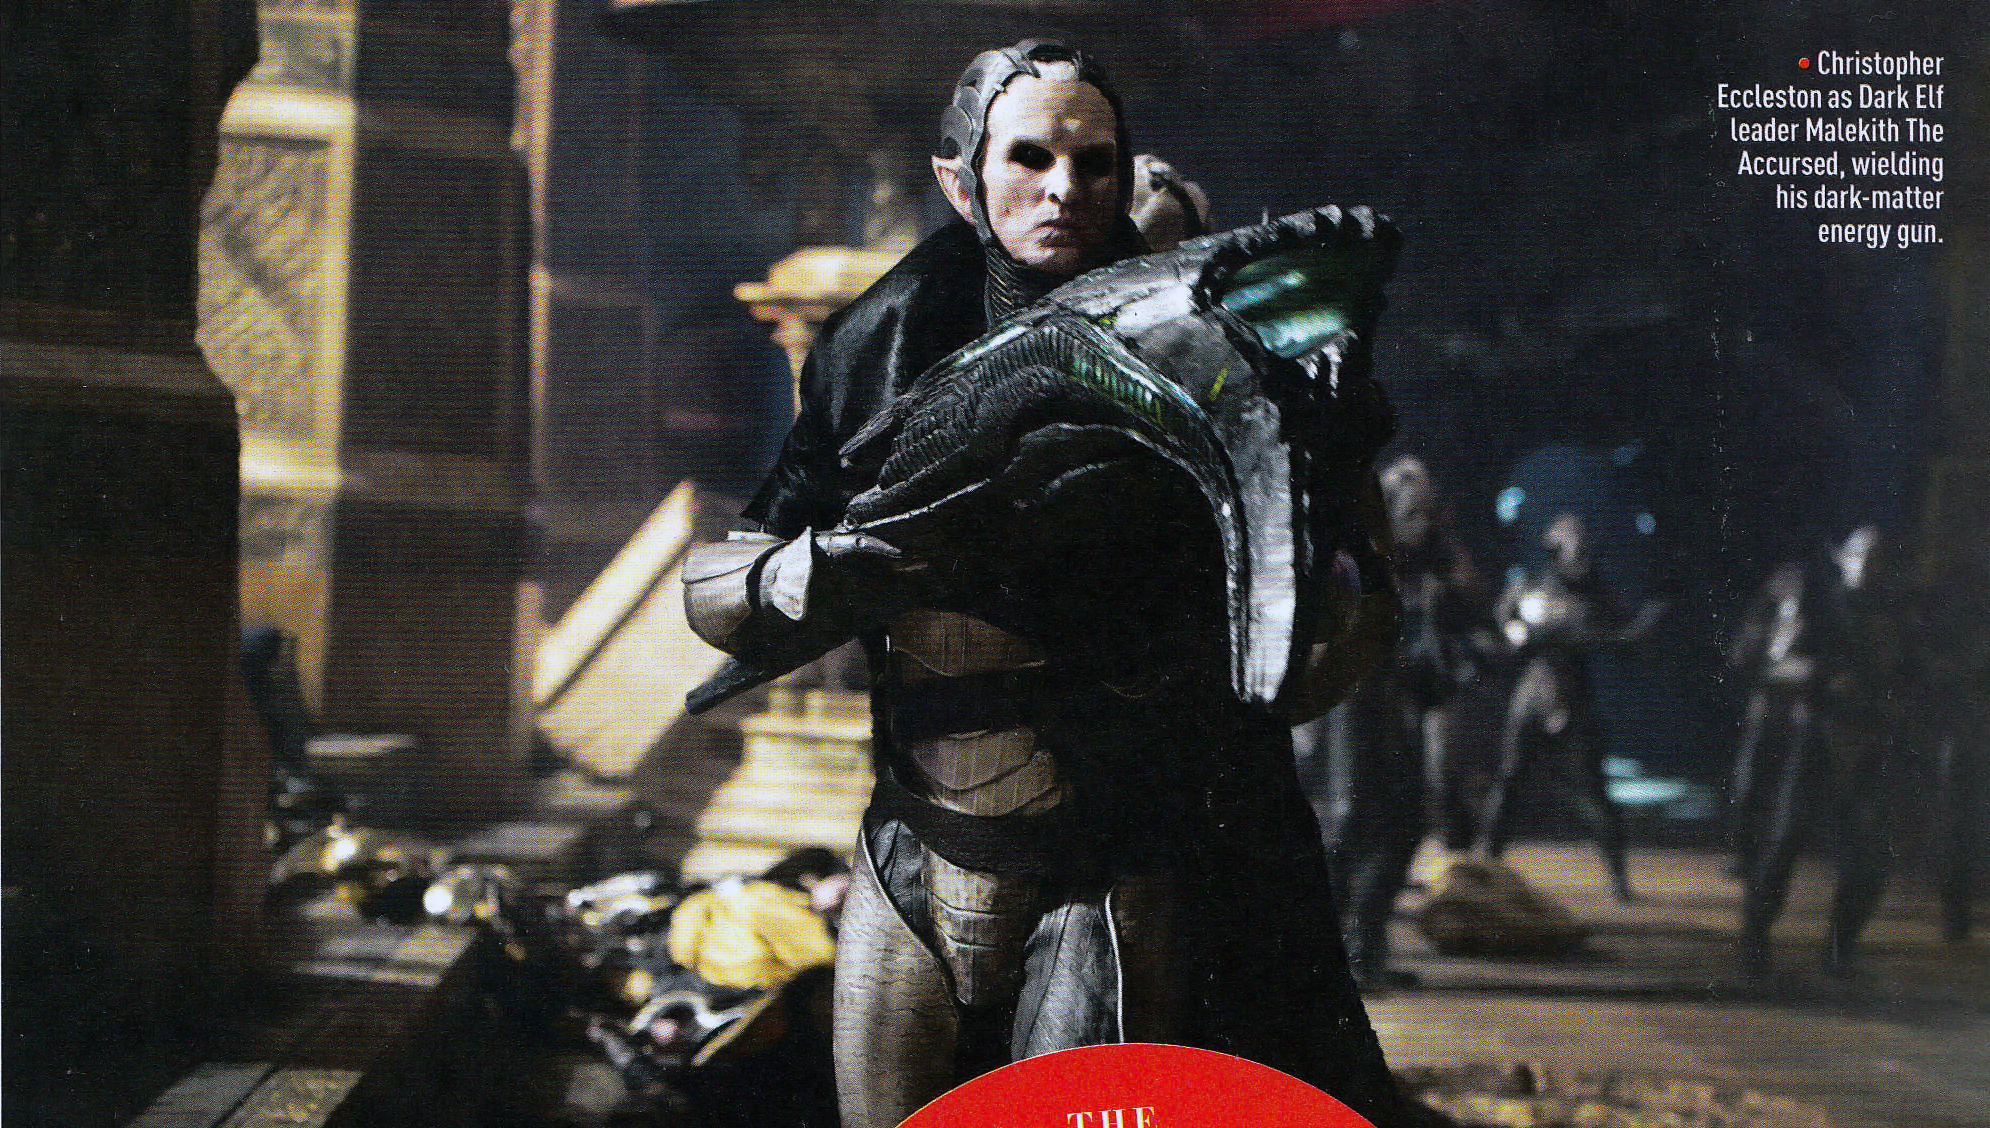 Thor The Dark World Dark Elf More Stills from Thor: The Dark World Released